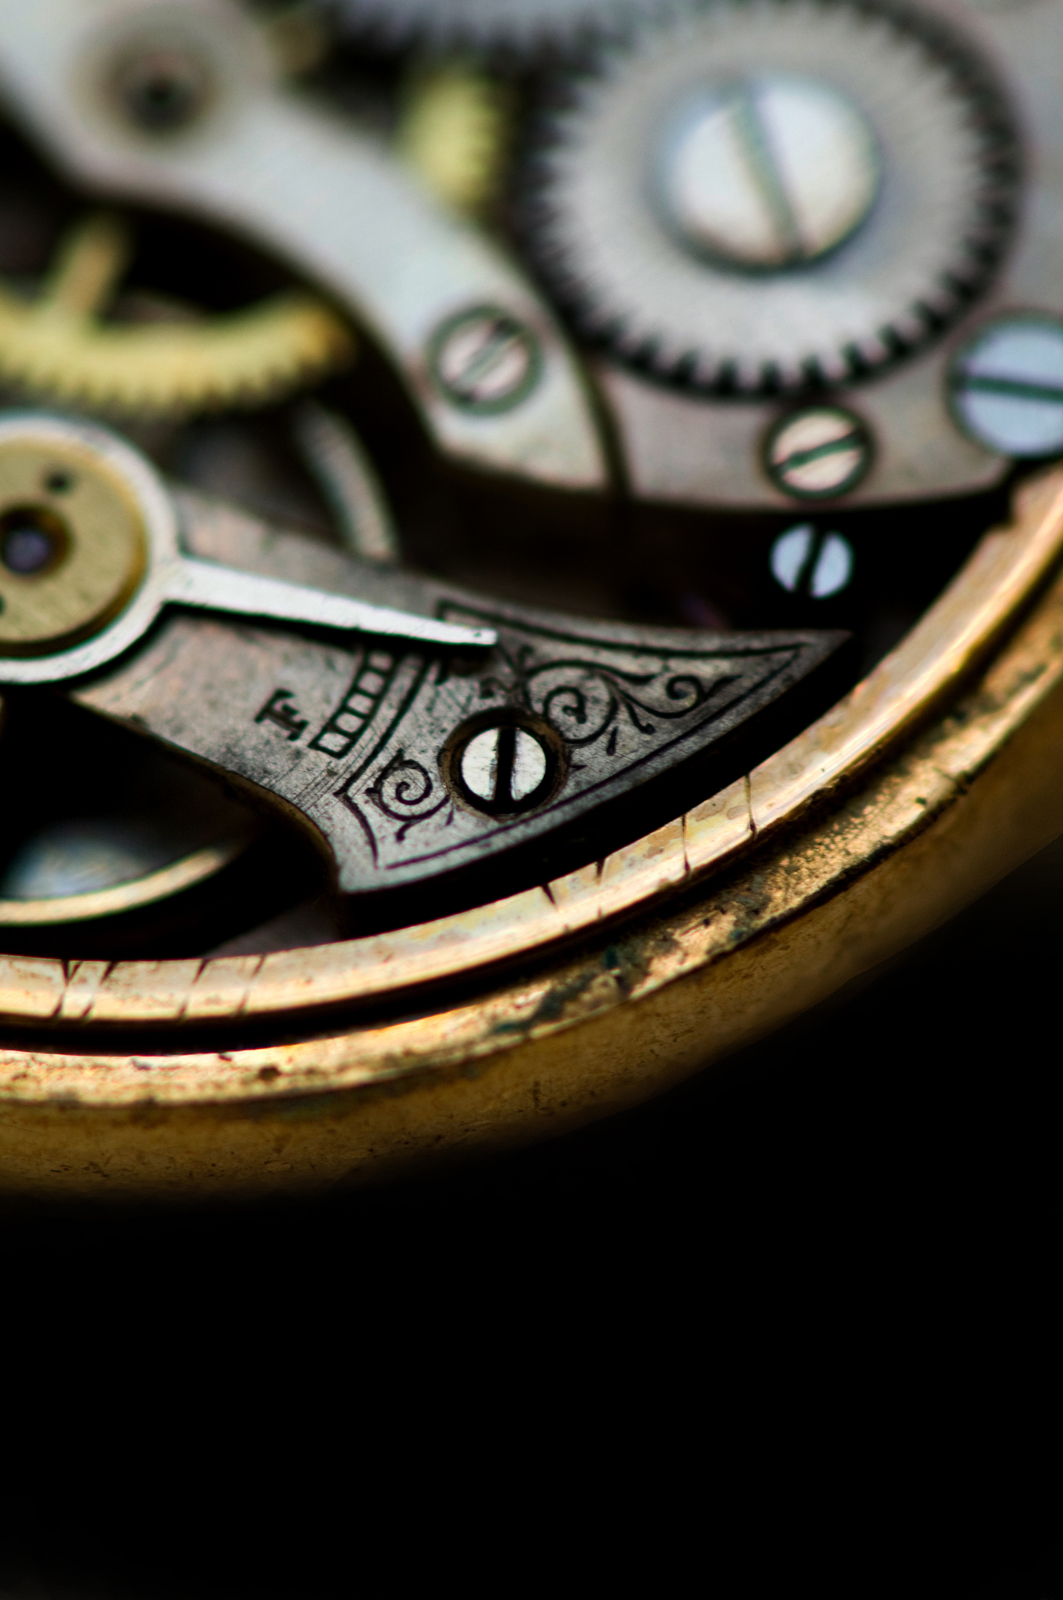 What You Need To Know About Antique Diamond Watches